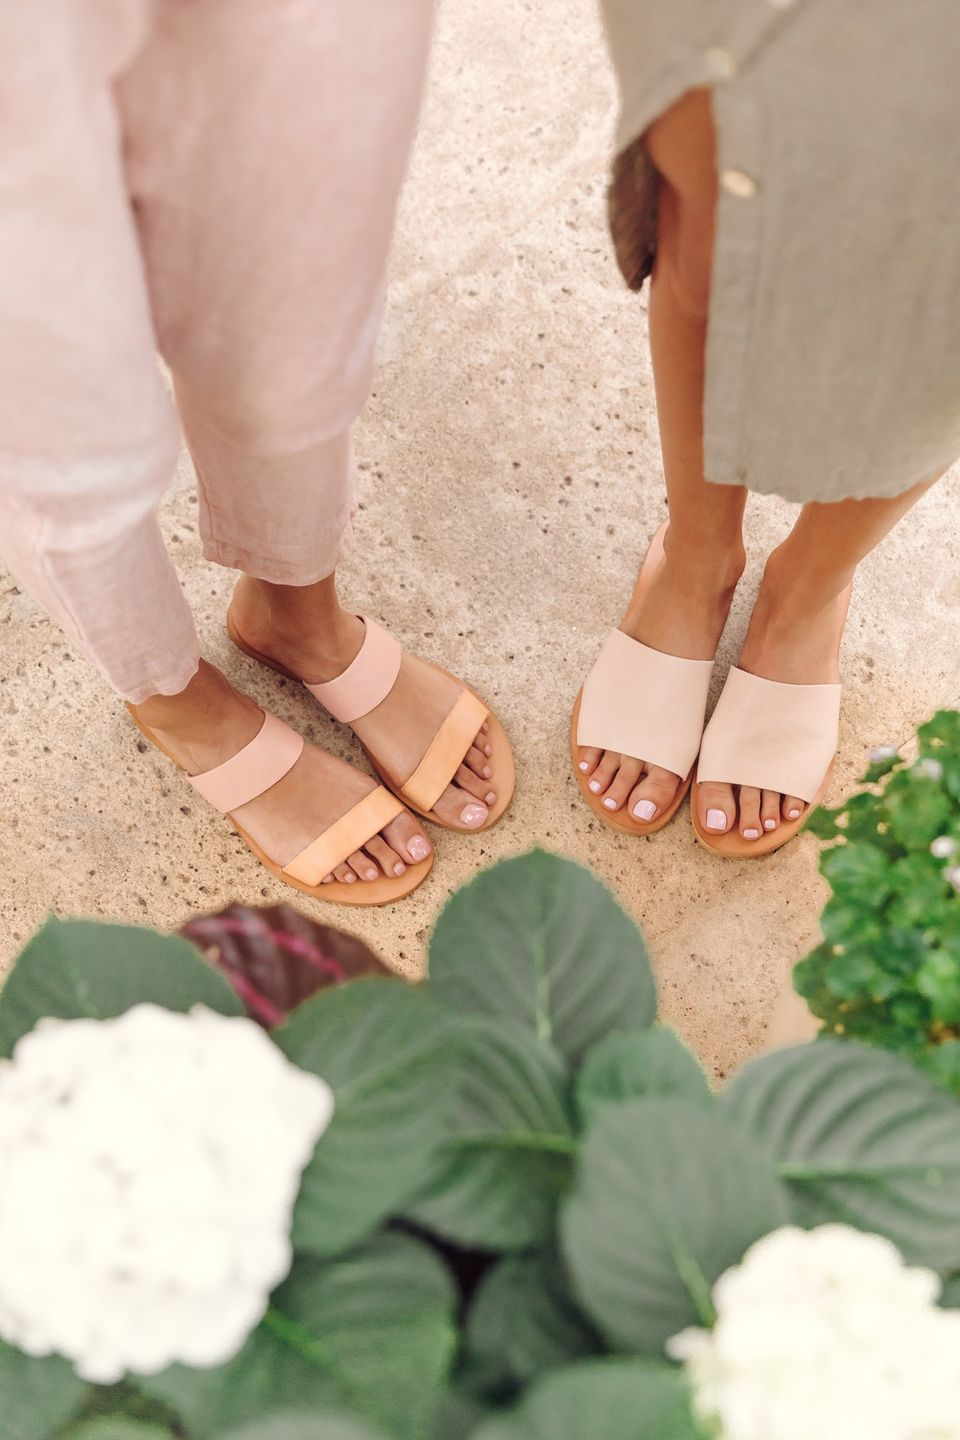 two ladies' feet wearing cream sandals by Cocobelle sustainable shoes brand